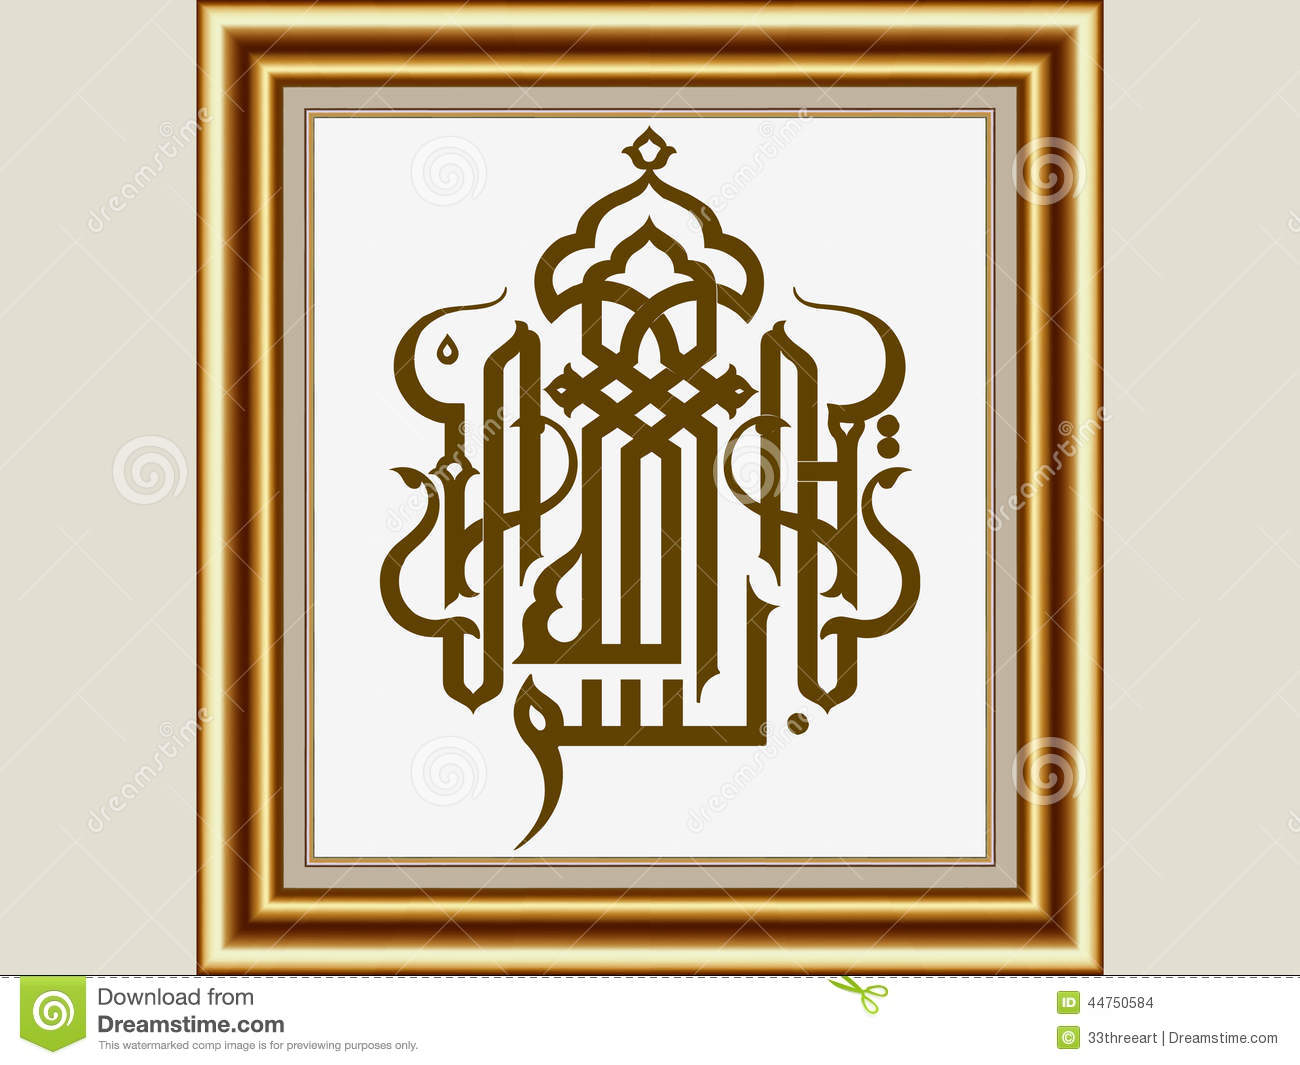 islamic art 2 essay Free essay: teri wilson march 1, 2010 professor hollinger module 5 jewish, early christian, byzantine and islamic art every religion has its own approach to.